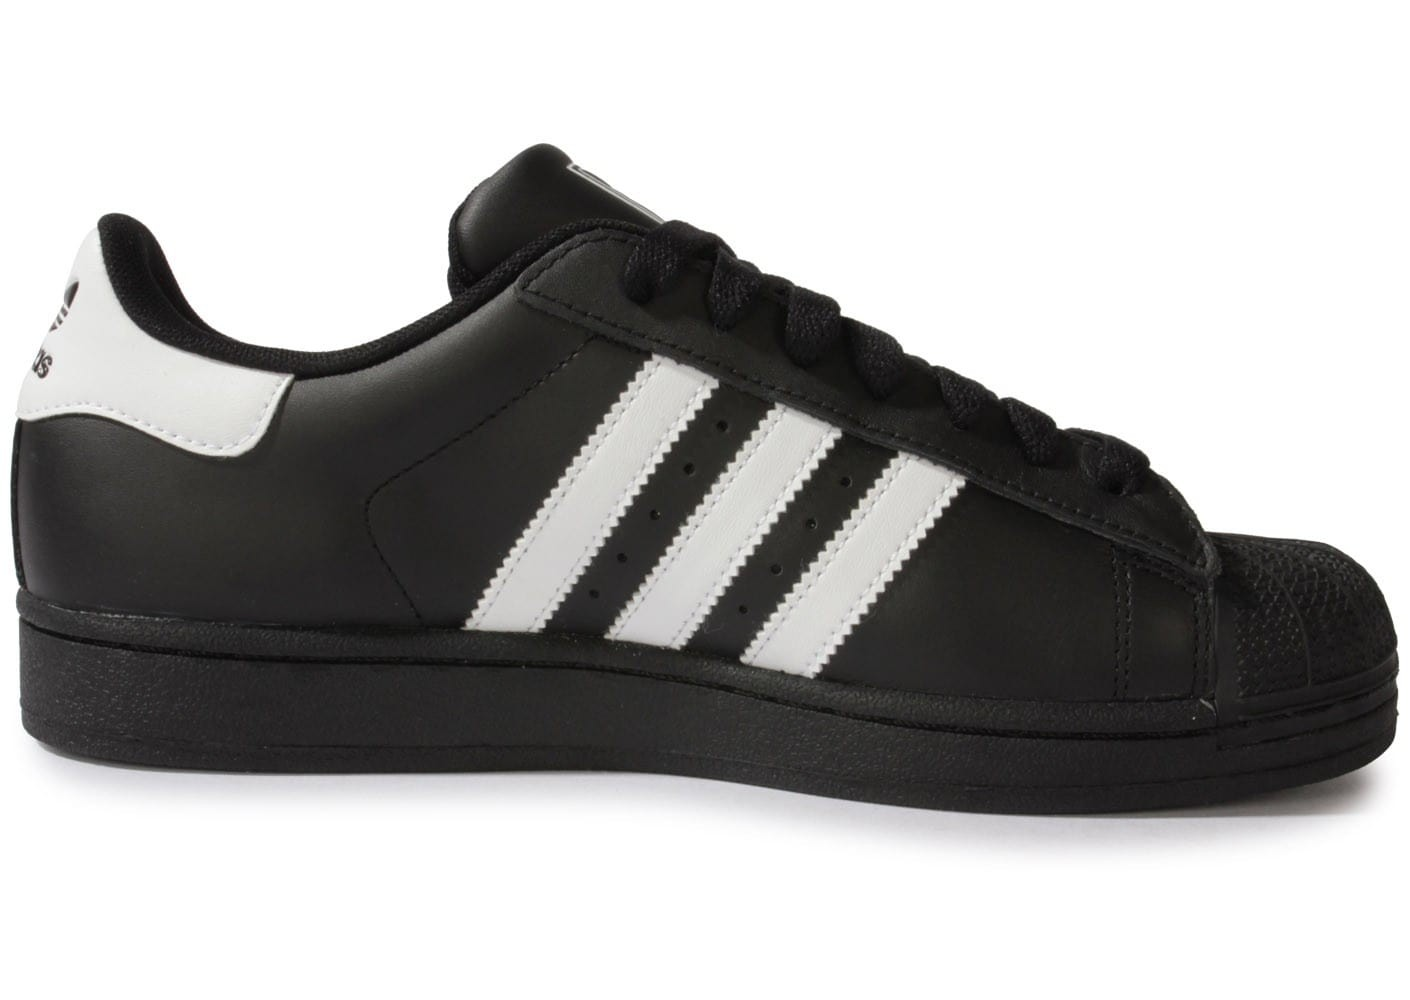 100% Authentique adidas superstar noir homme pas cher Outlet